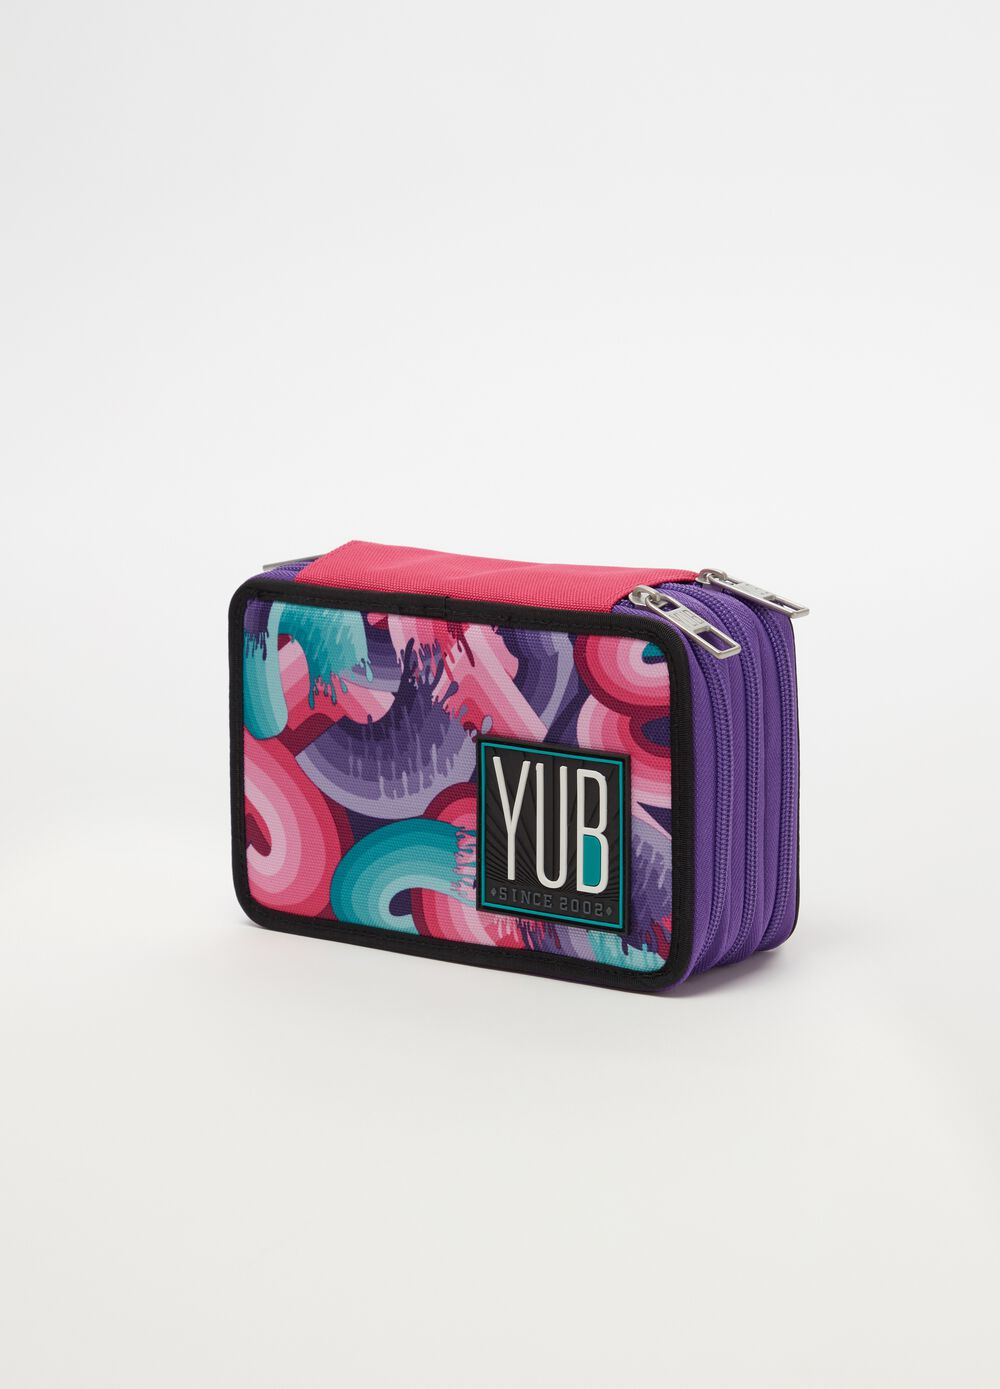 Case with 3 YUB zips